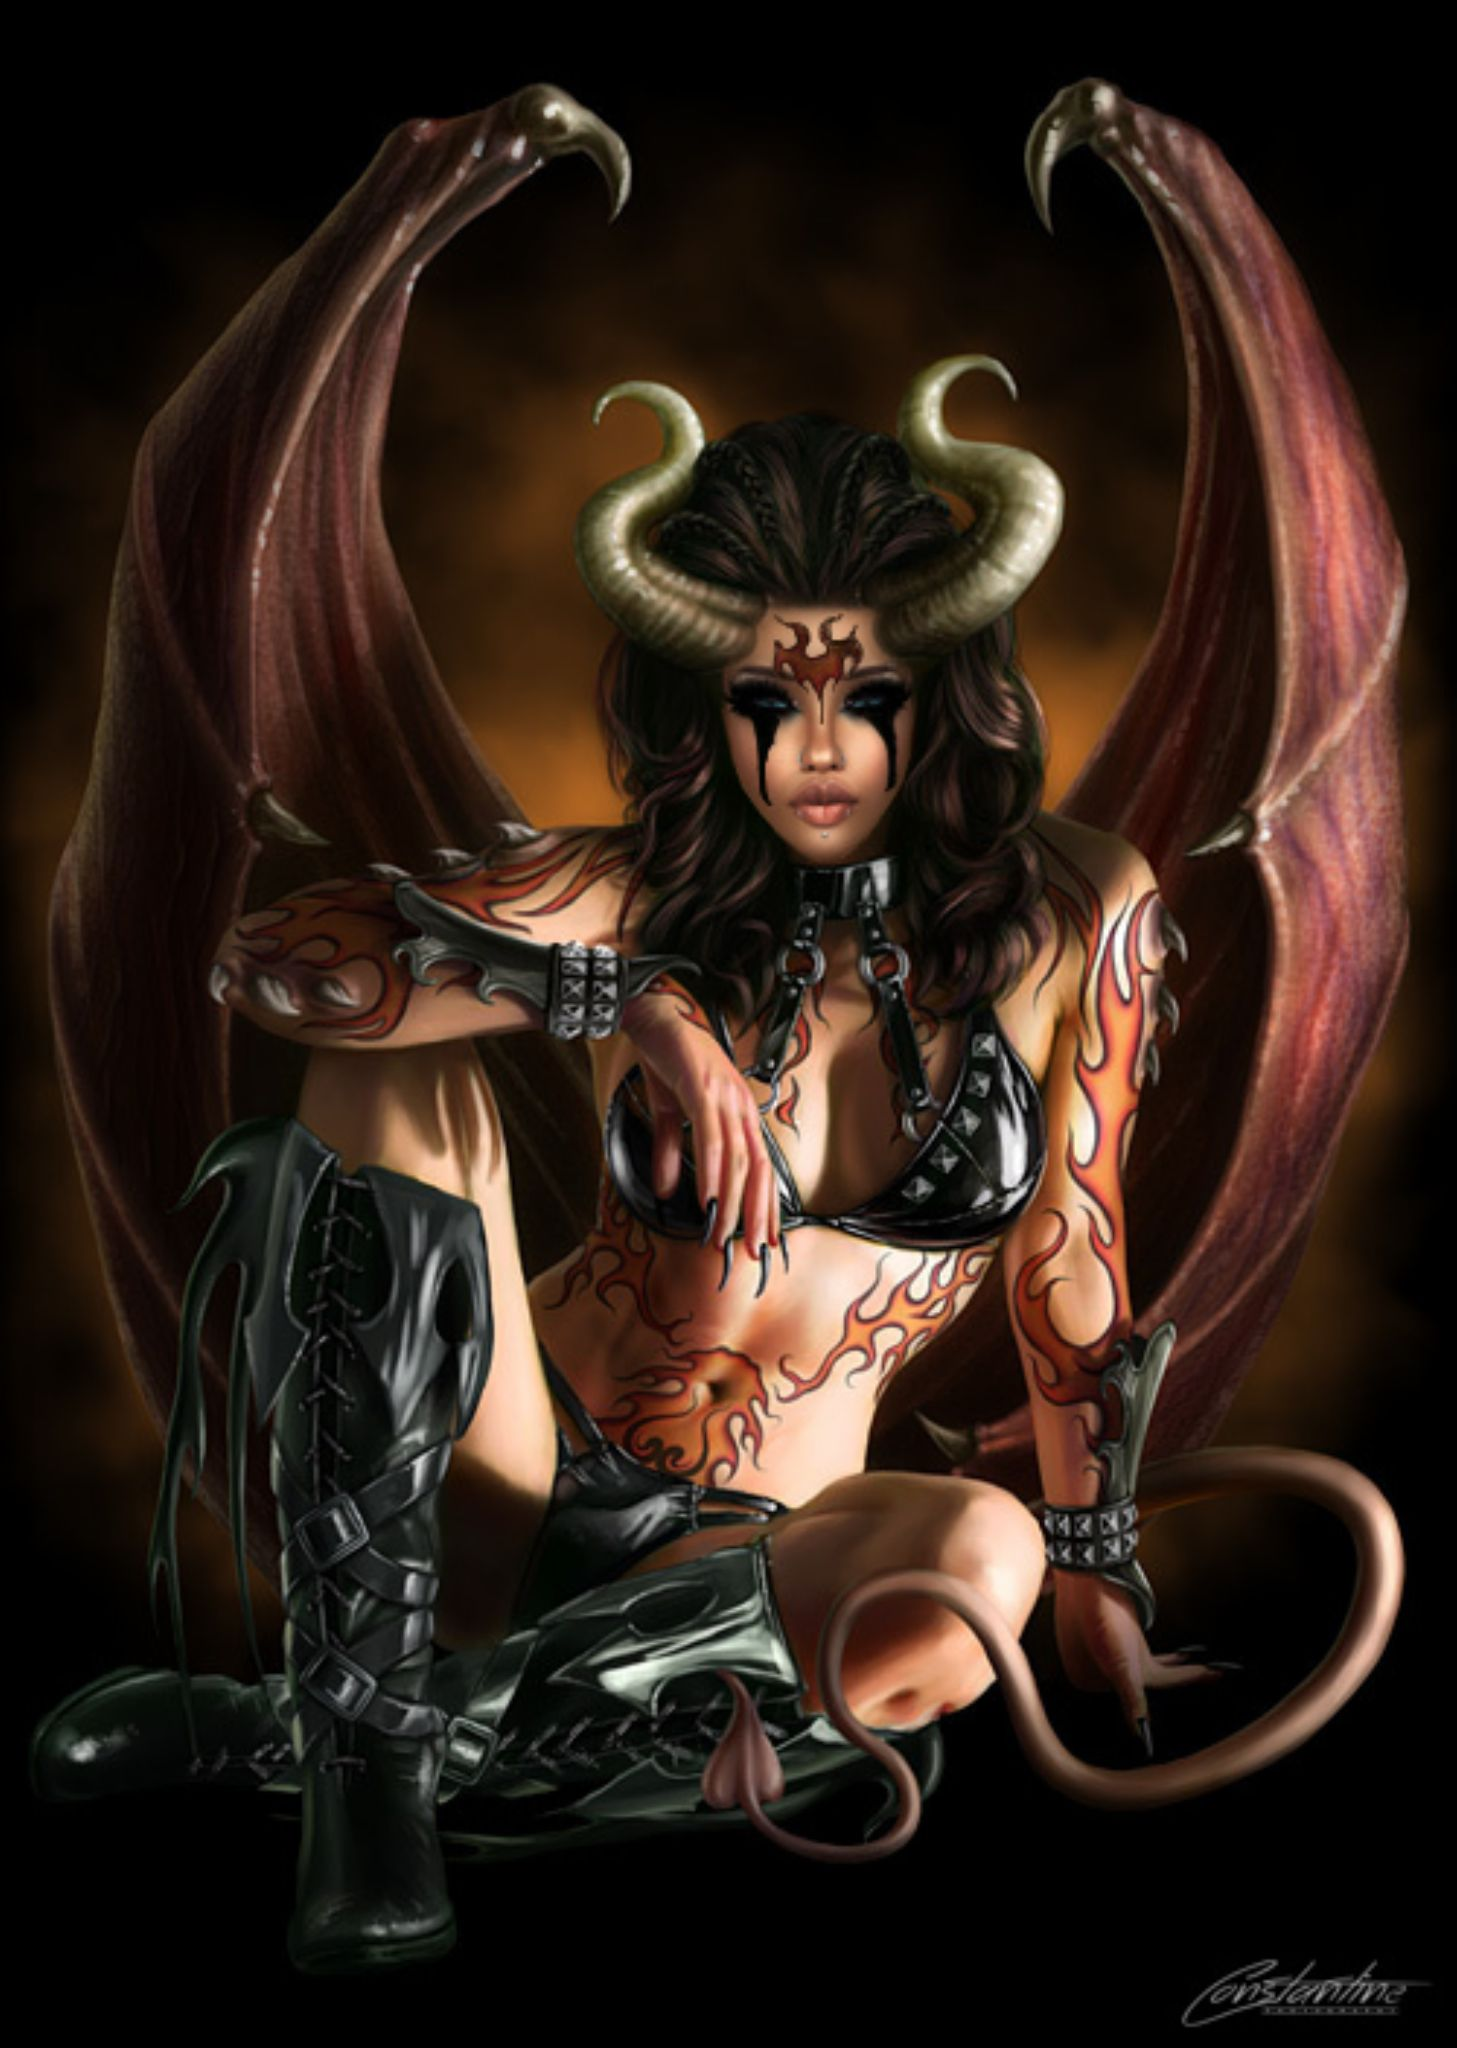 Lolly Horny Devil by Wrath Constantine